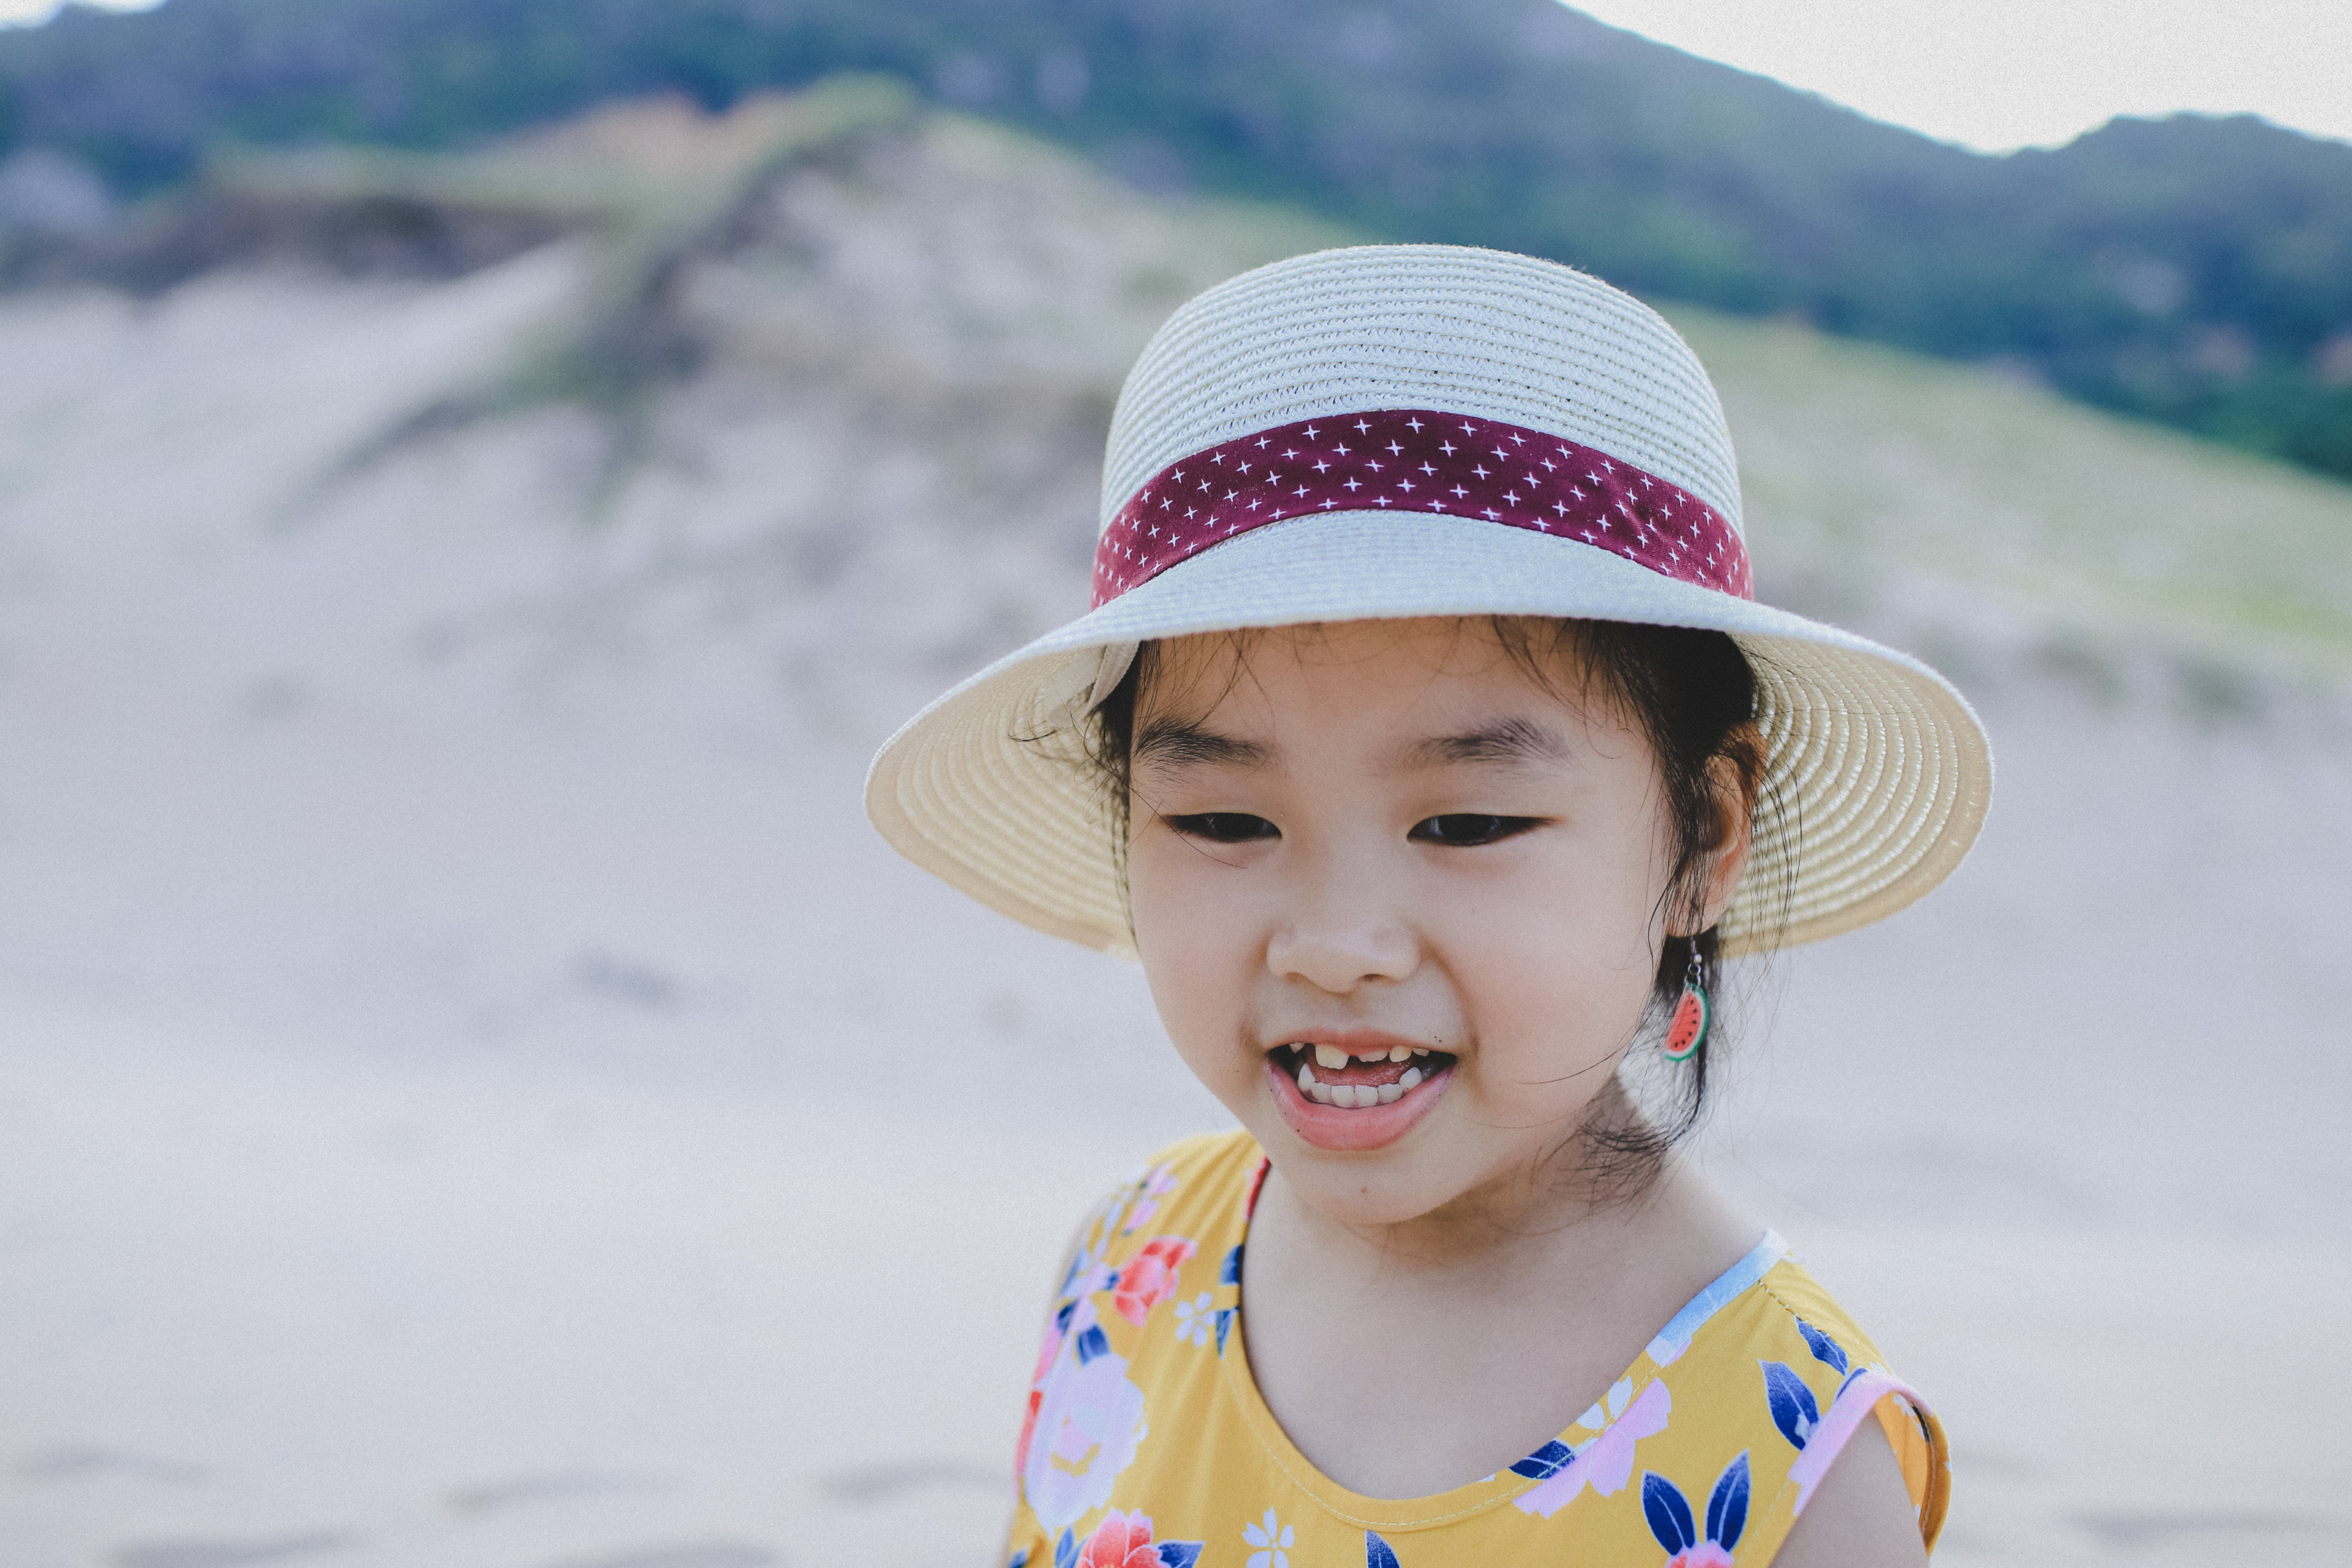 Girl Wearing White Hat Smiling